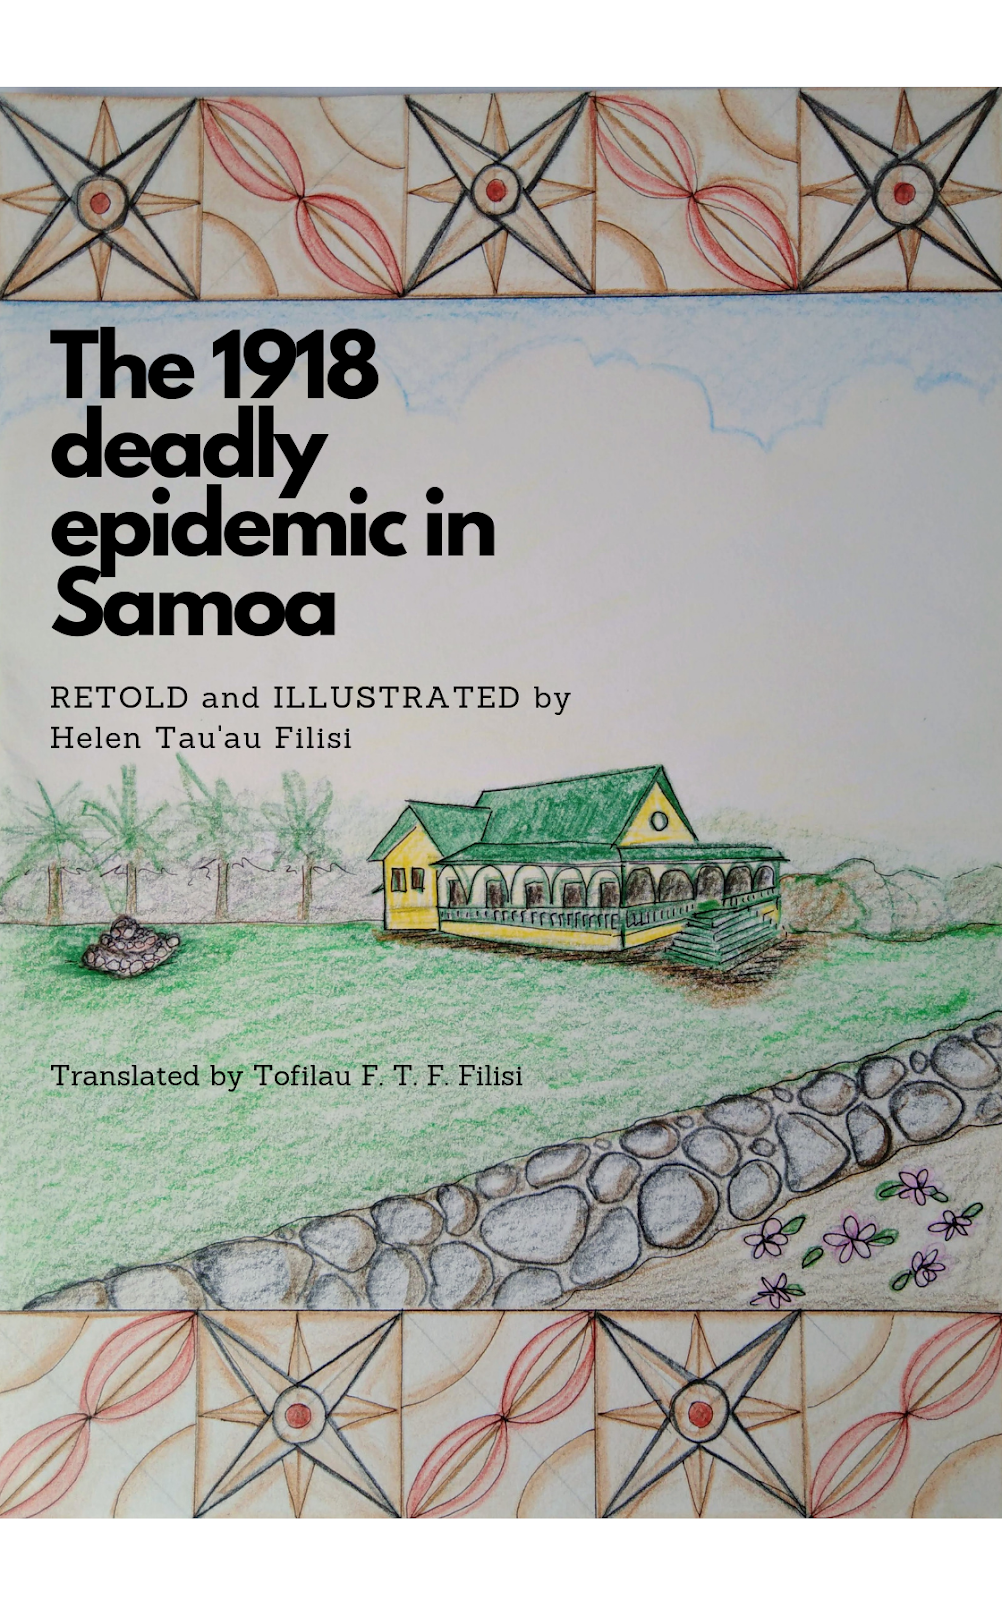 The 1918 deadly epidemic in Samoa